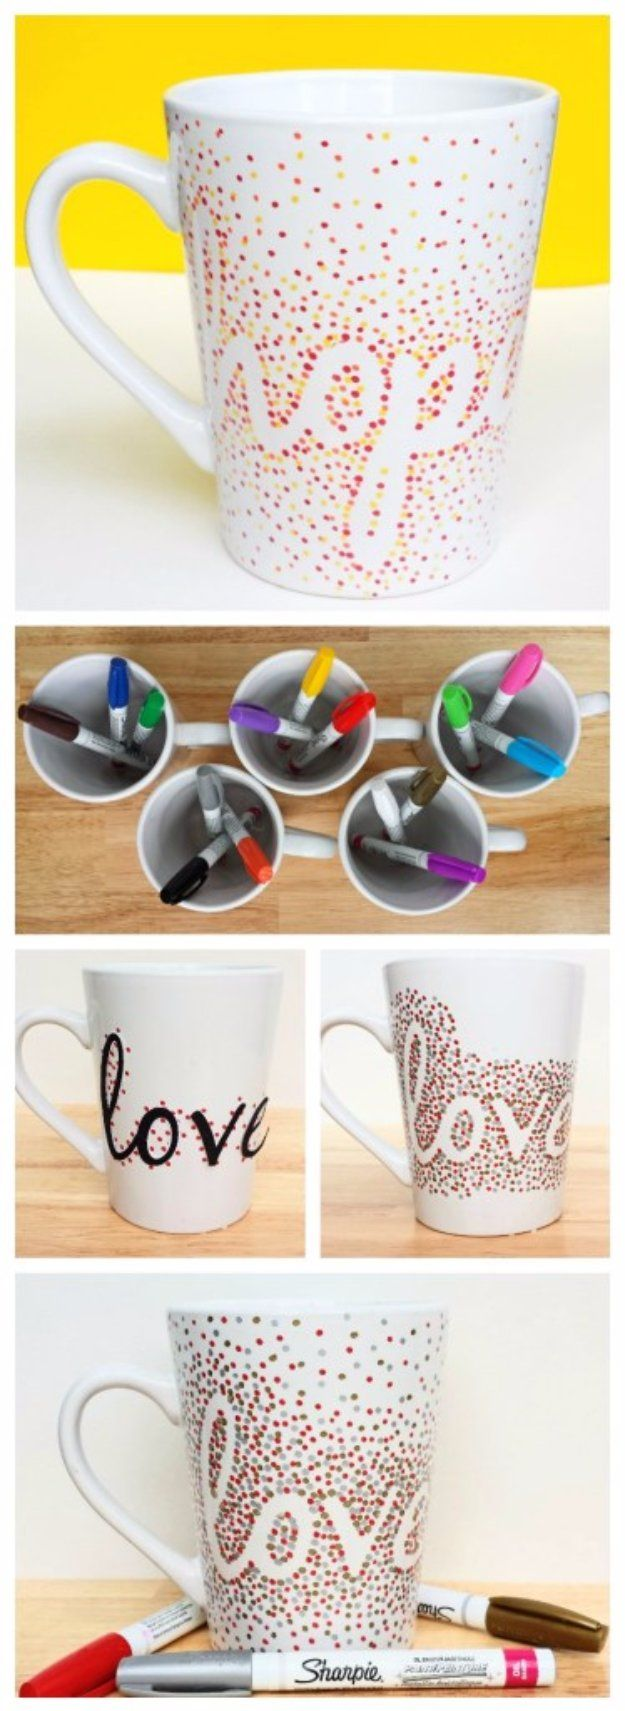 Store Mugs Use Oil Based Sharpies And Dollar To Make These Easy Stunning DIY Dotted Need Great Ideas Concerning Arts Crafts